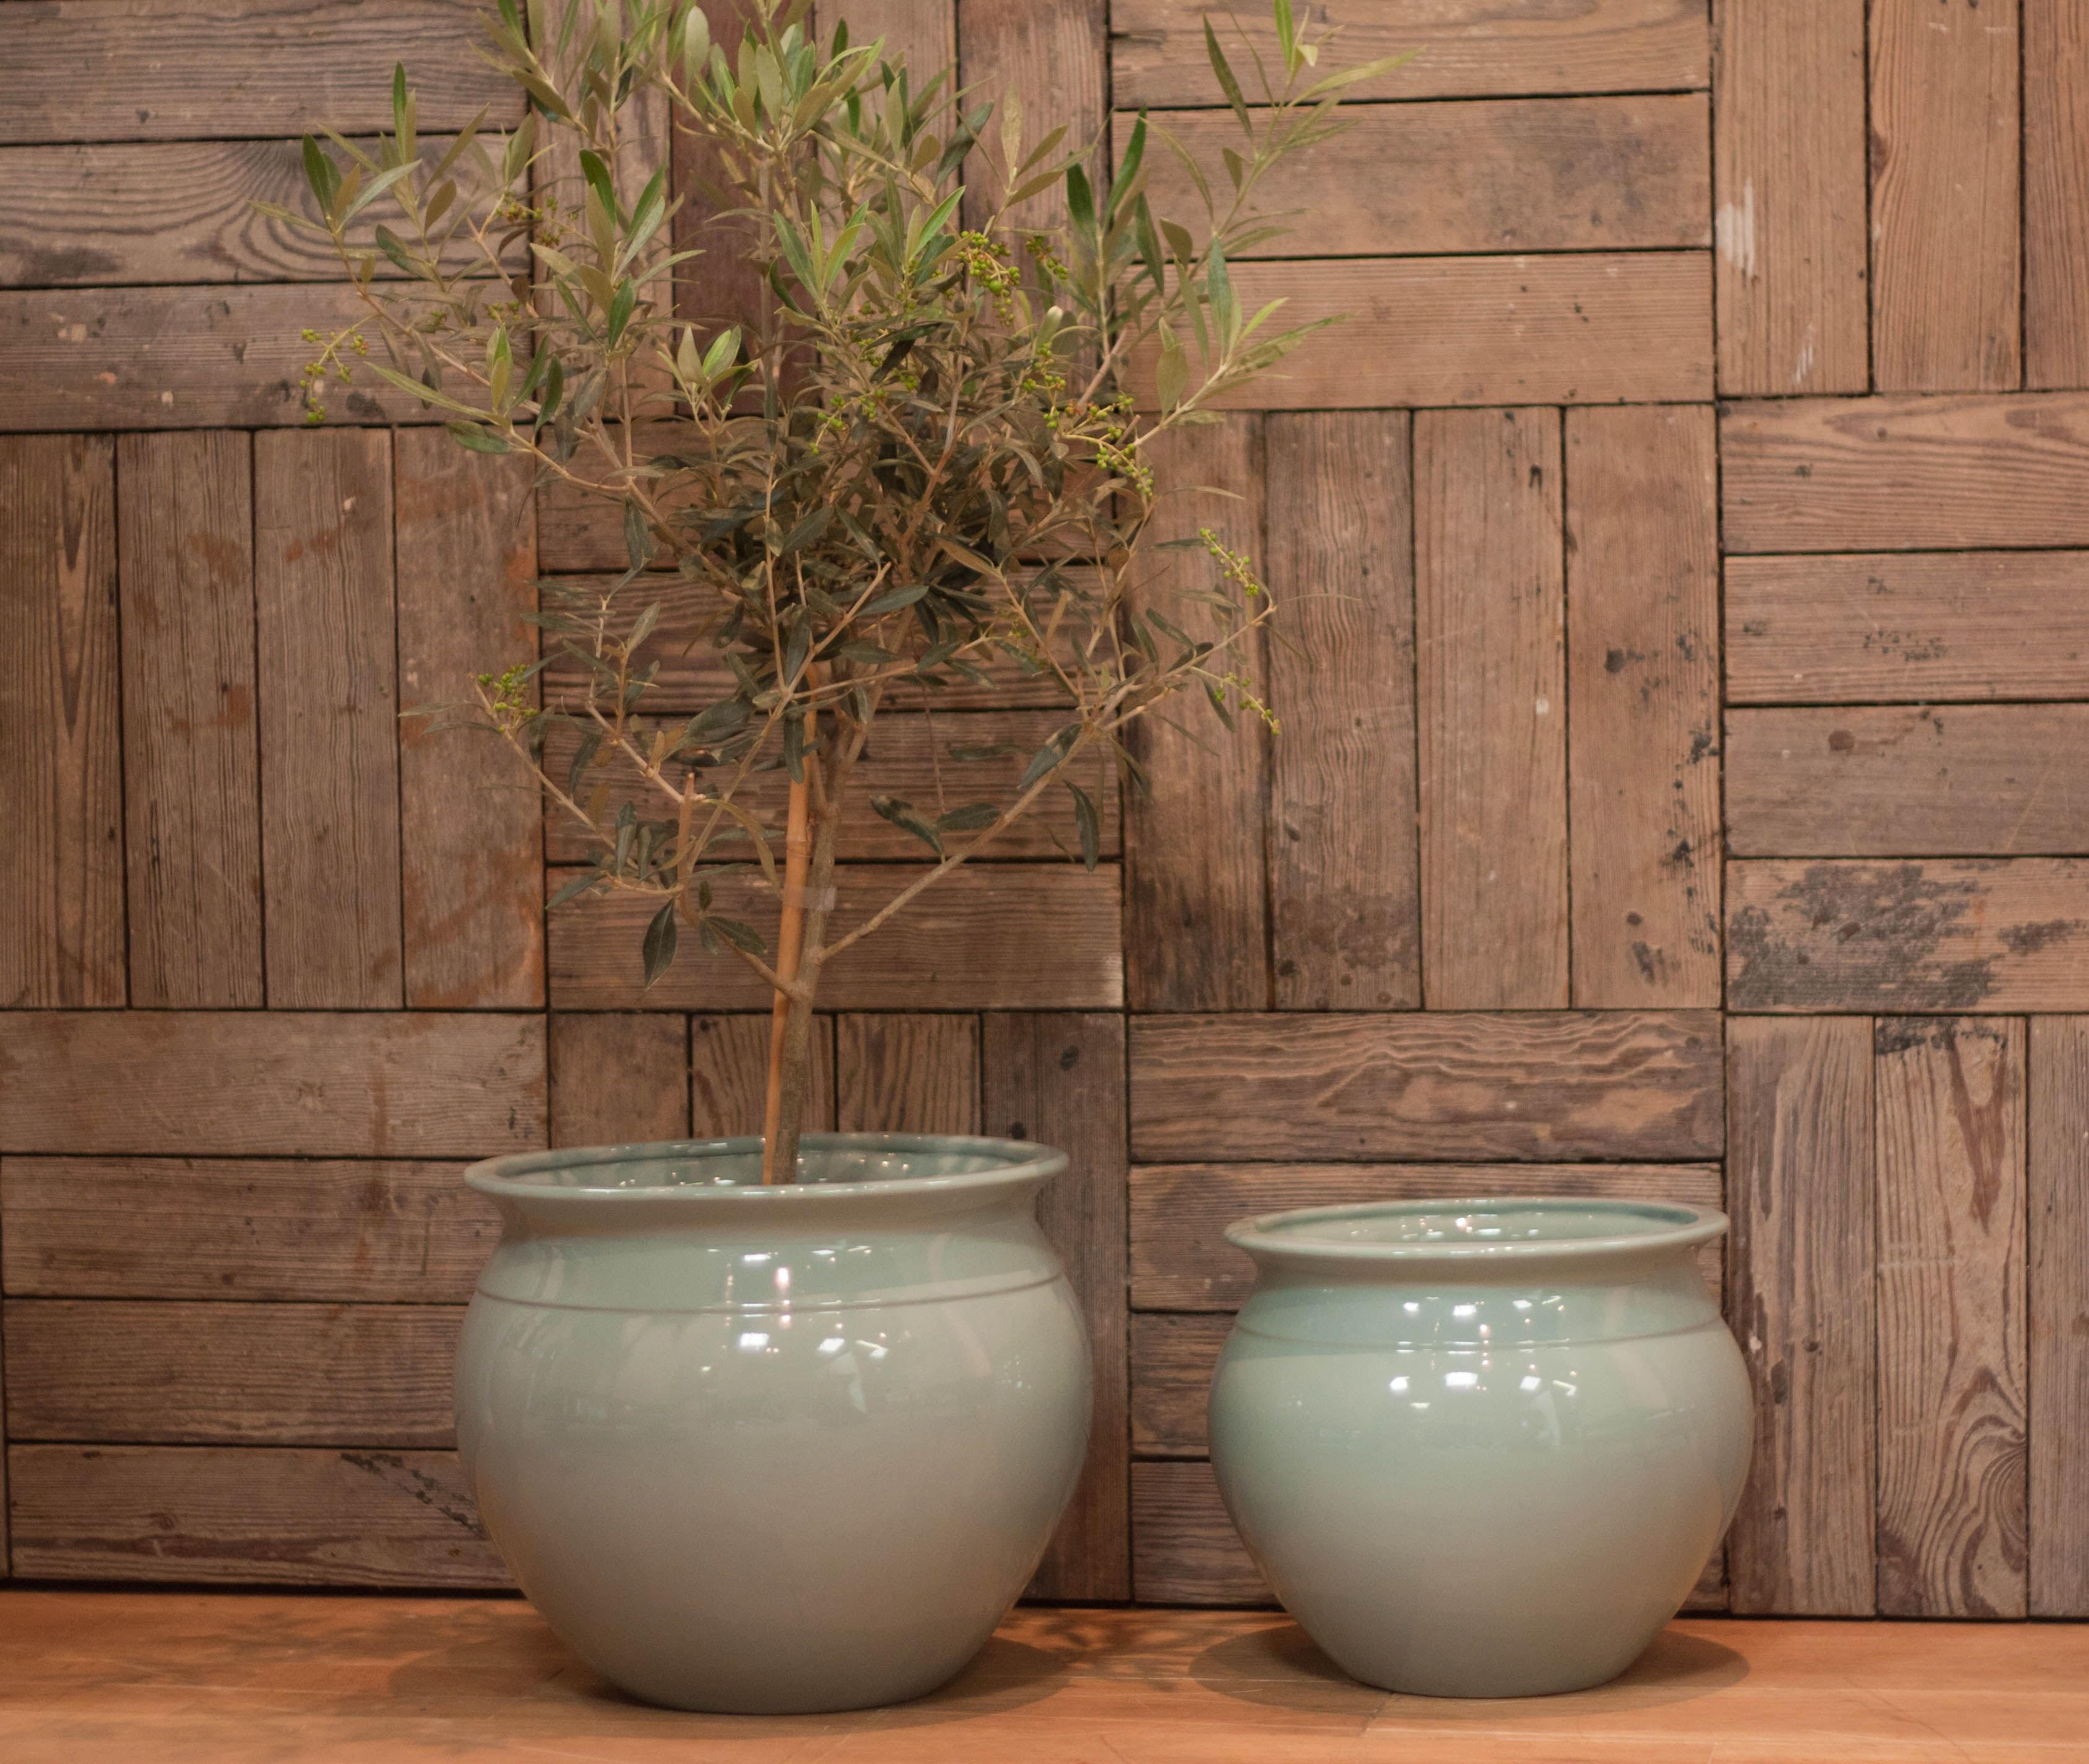 Superior Awesome Ceramic Pots For Indoor Plants Contemporary   Interior ... Awesome Ceramic  Pots For Indoor Plants ...